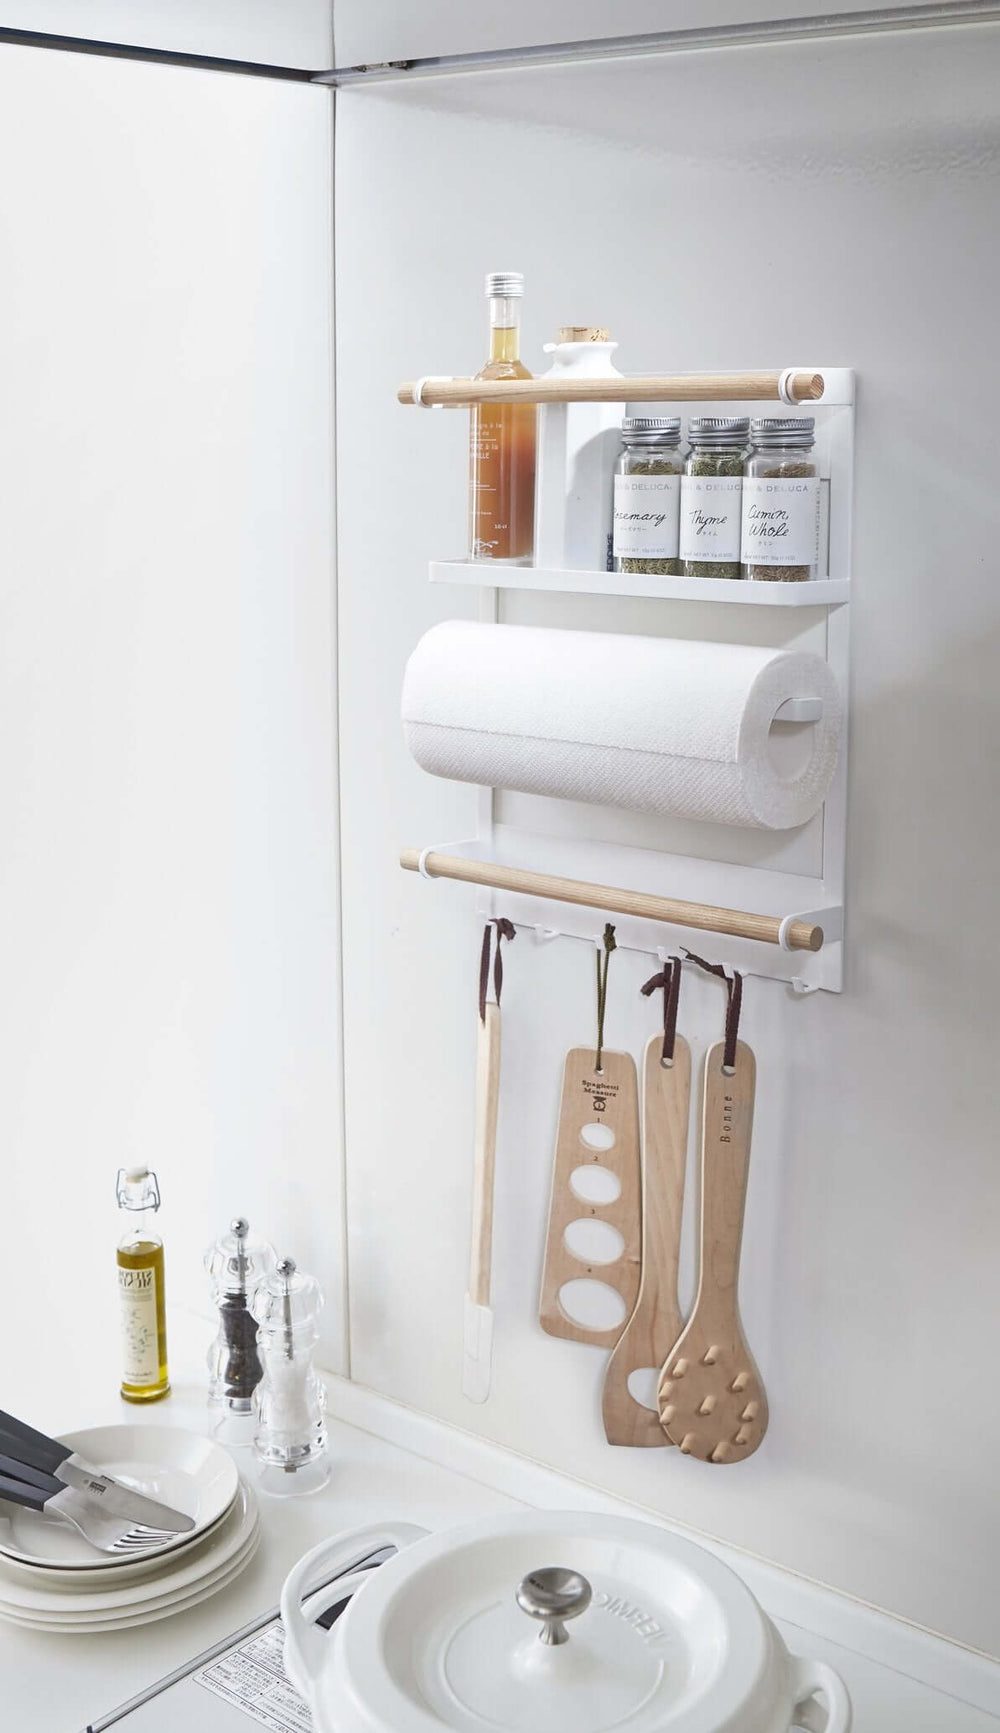 Yamazaki's white magnetic organizing rack holding kitchen and cooking supplies on the fridge